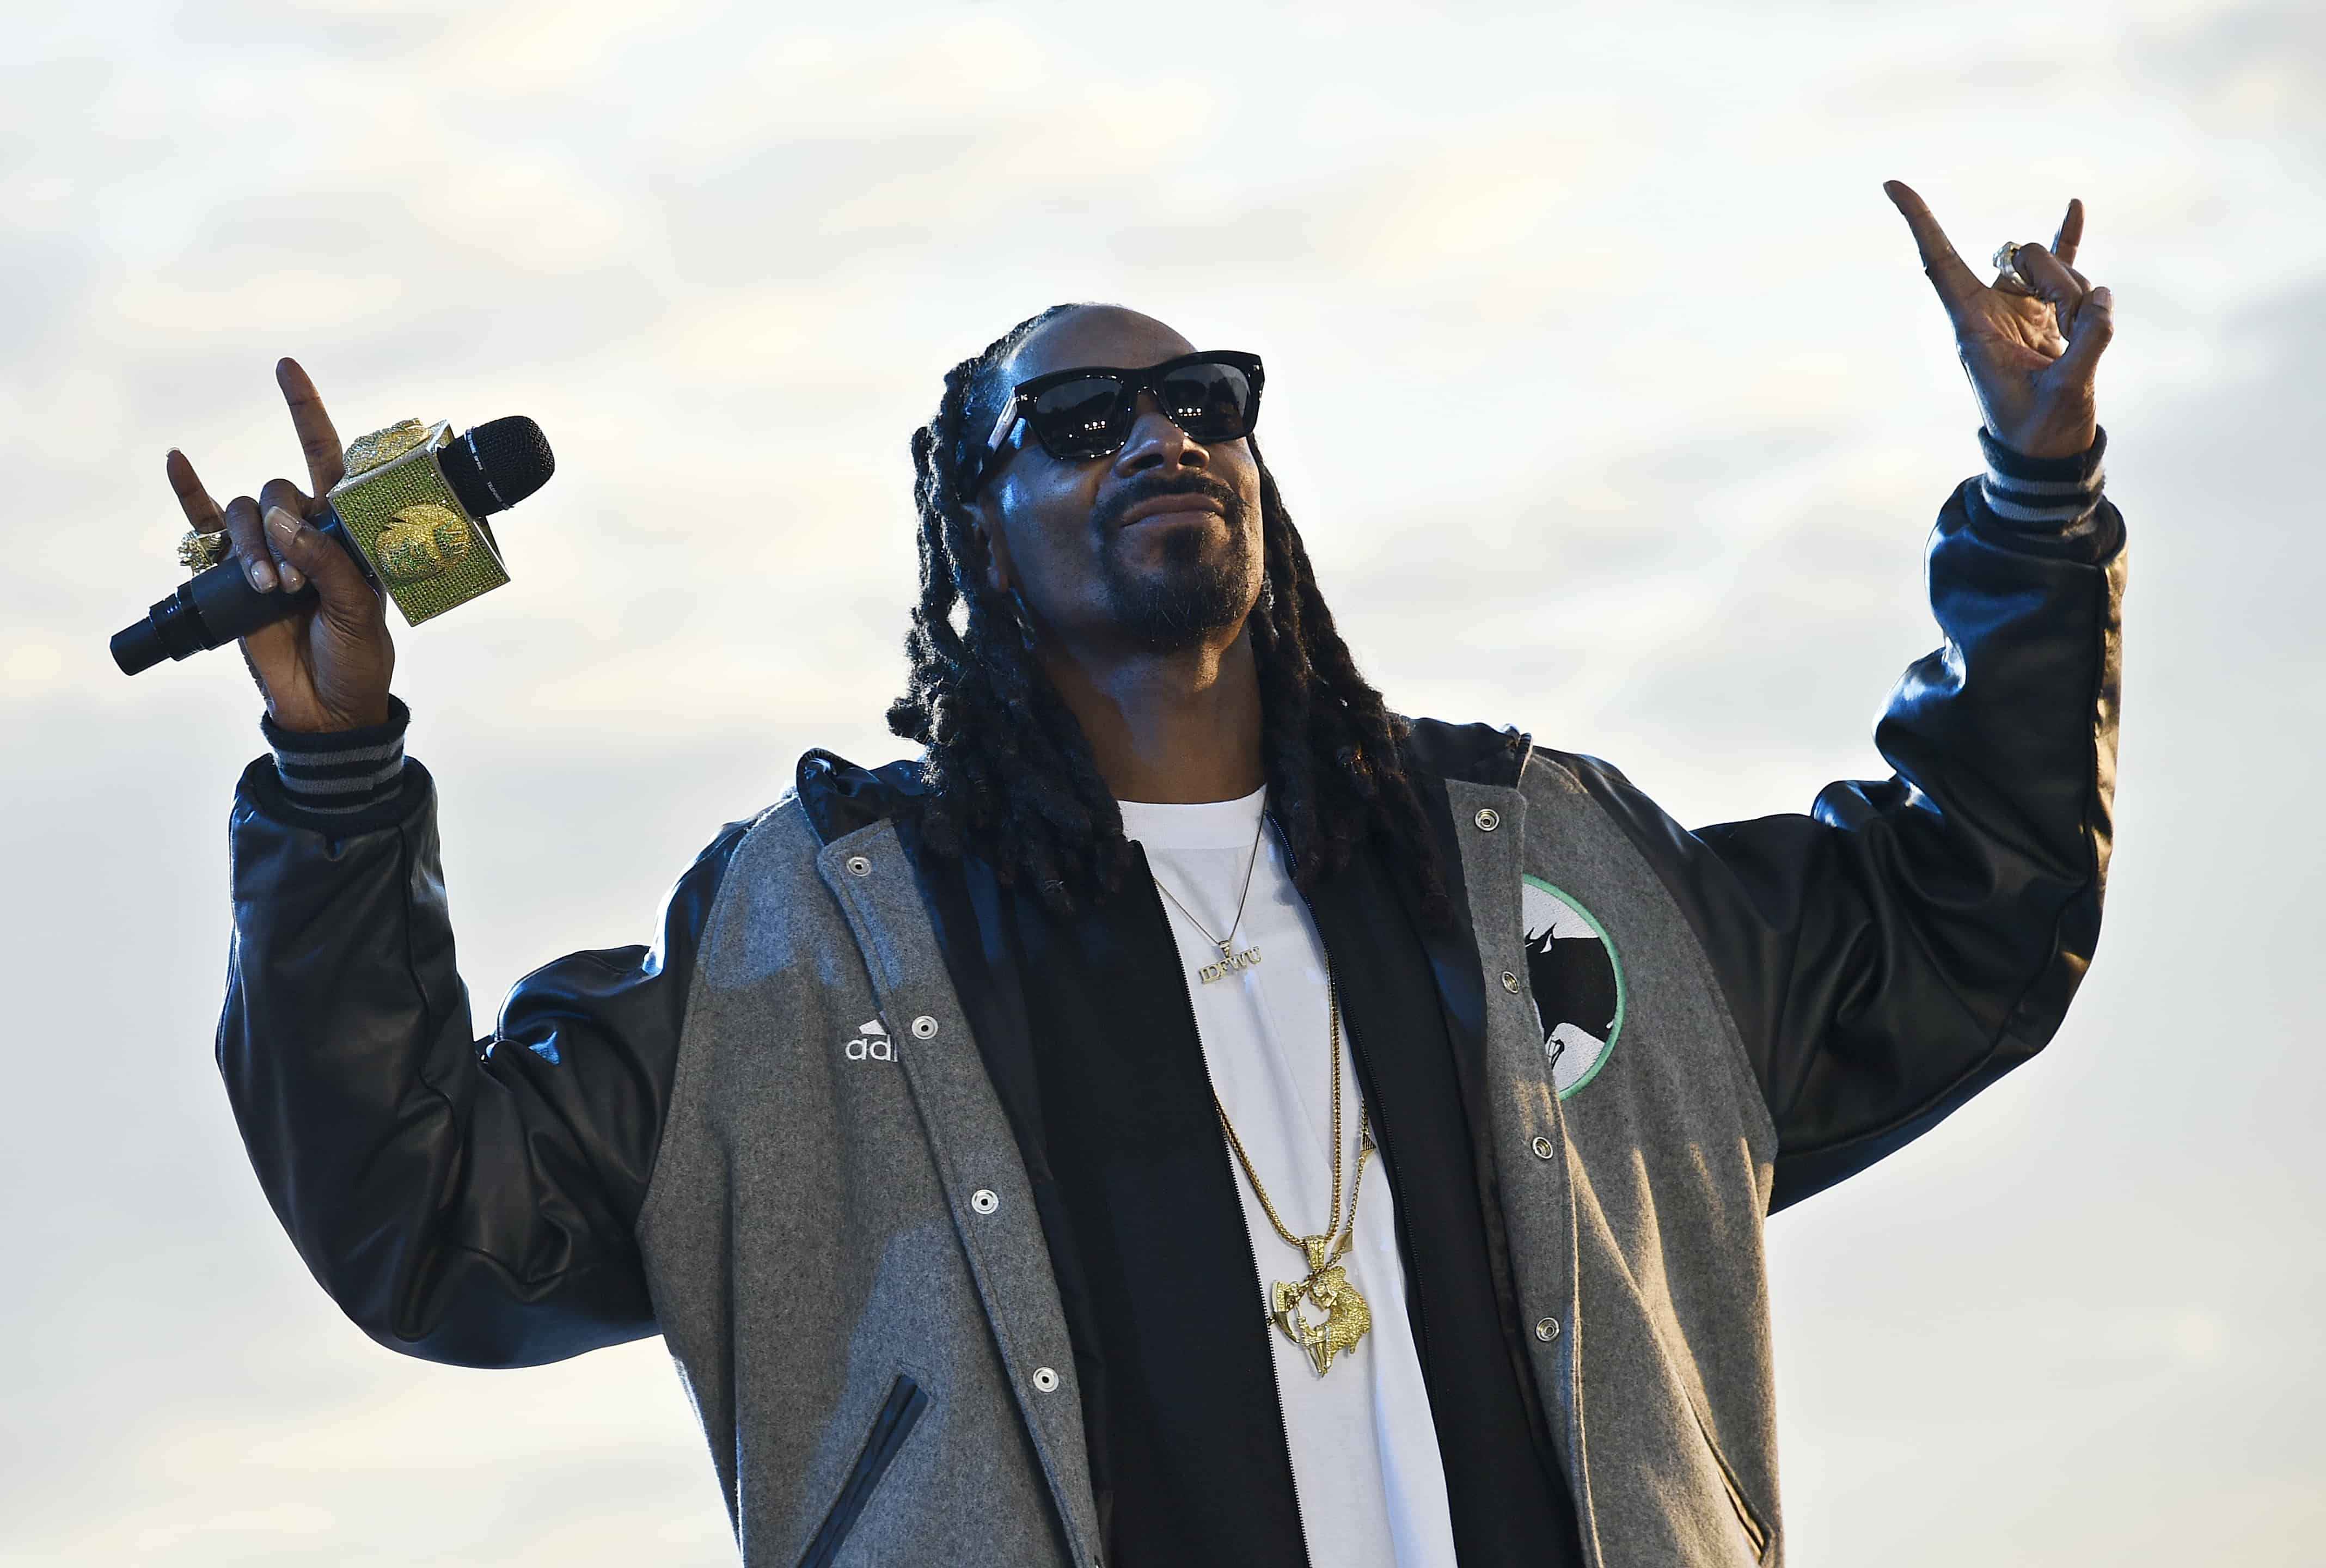 U.S. rapper Snoop Dogg performs.